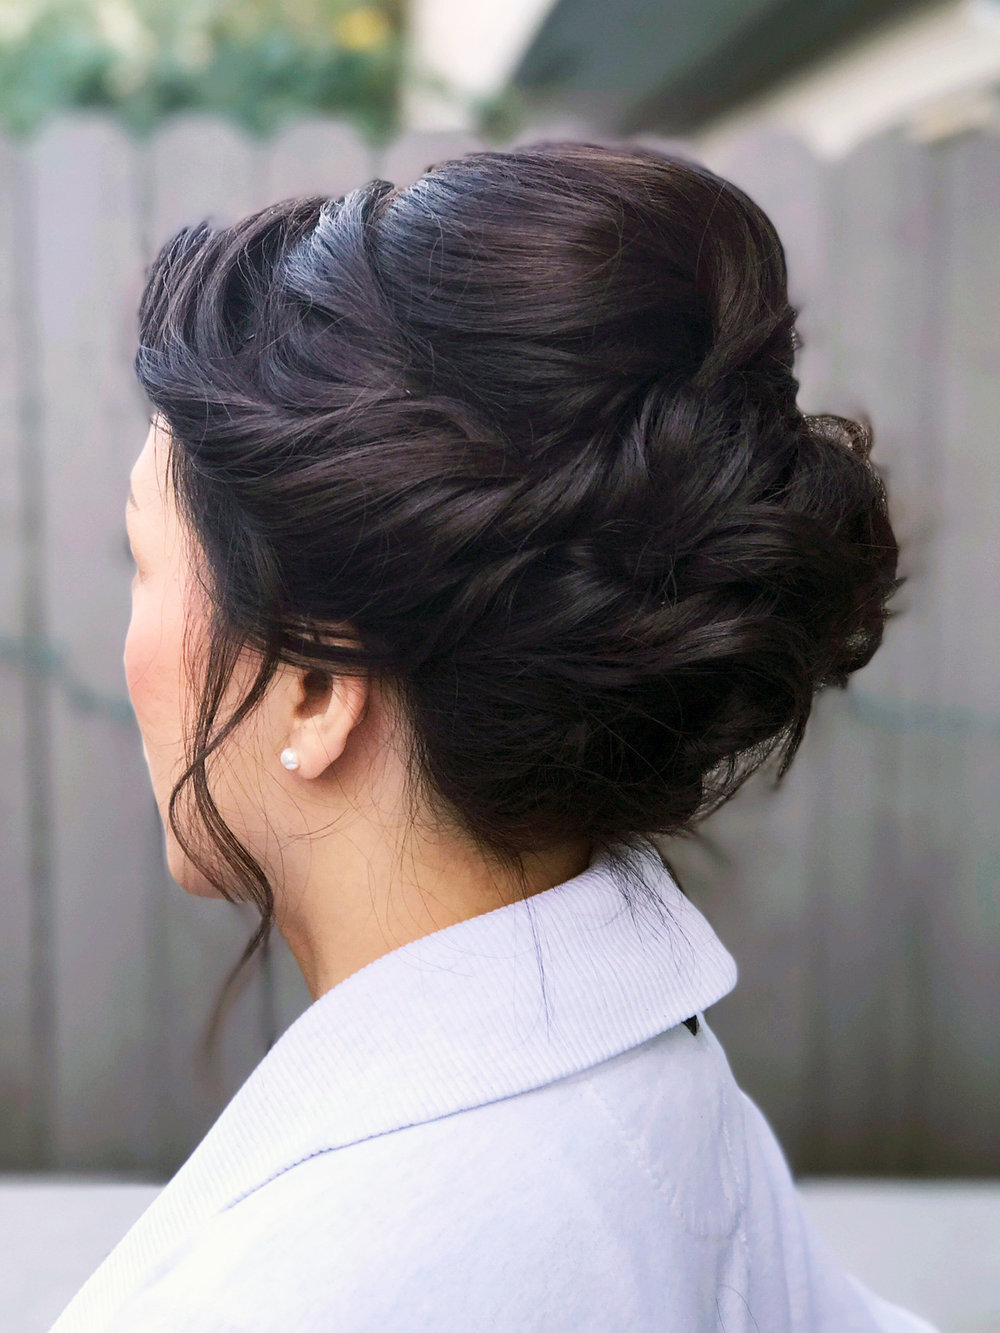 Updo romantic beauty affair los angeles.JPG